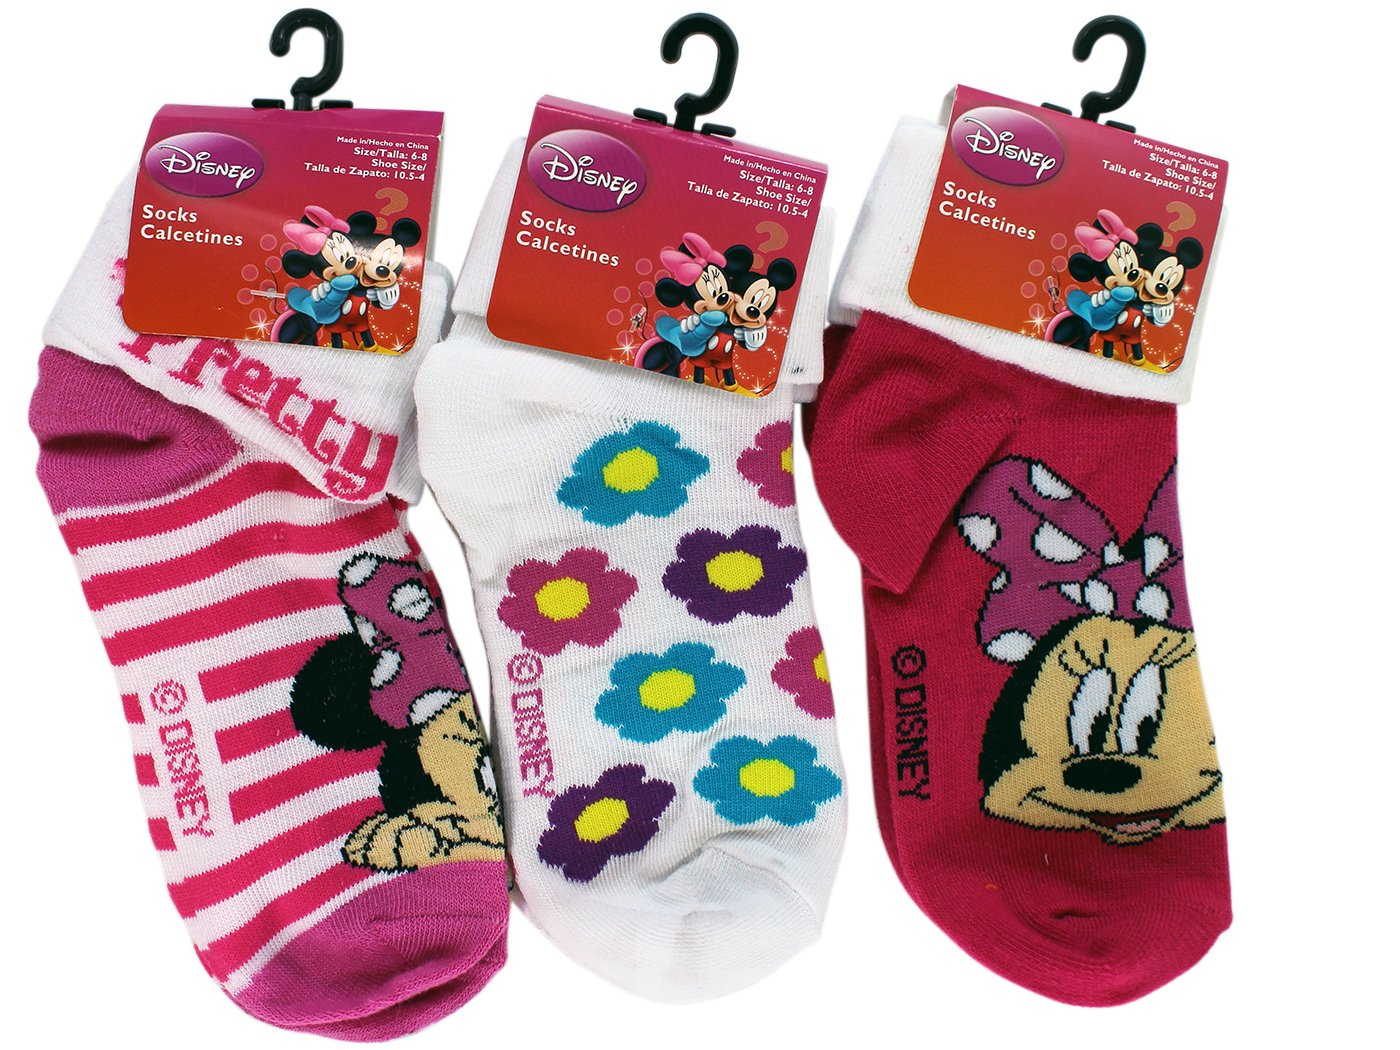 Amazon.com: 3 Pair Assorted Minnie Mouse Socks (Size 6-8) - Kids Socks: Toys & Games